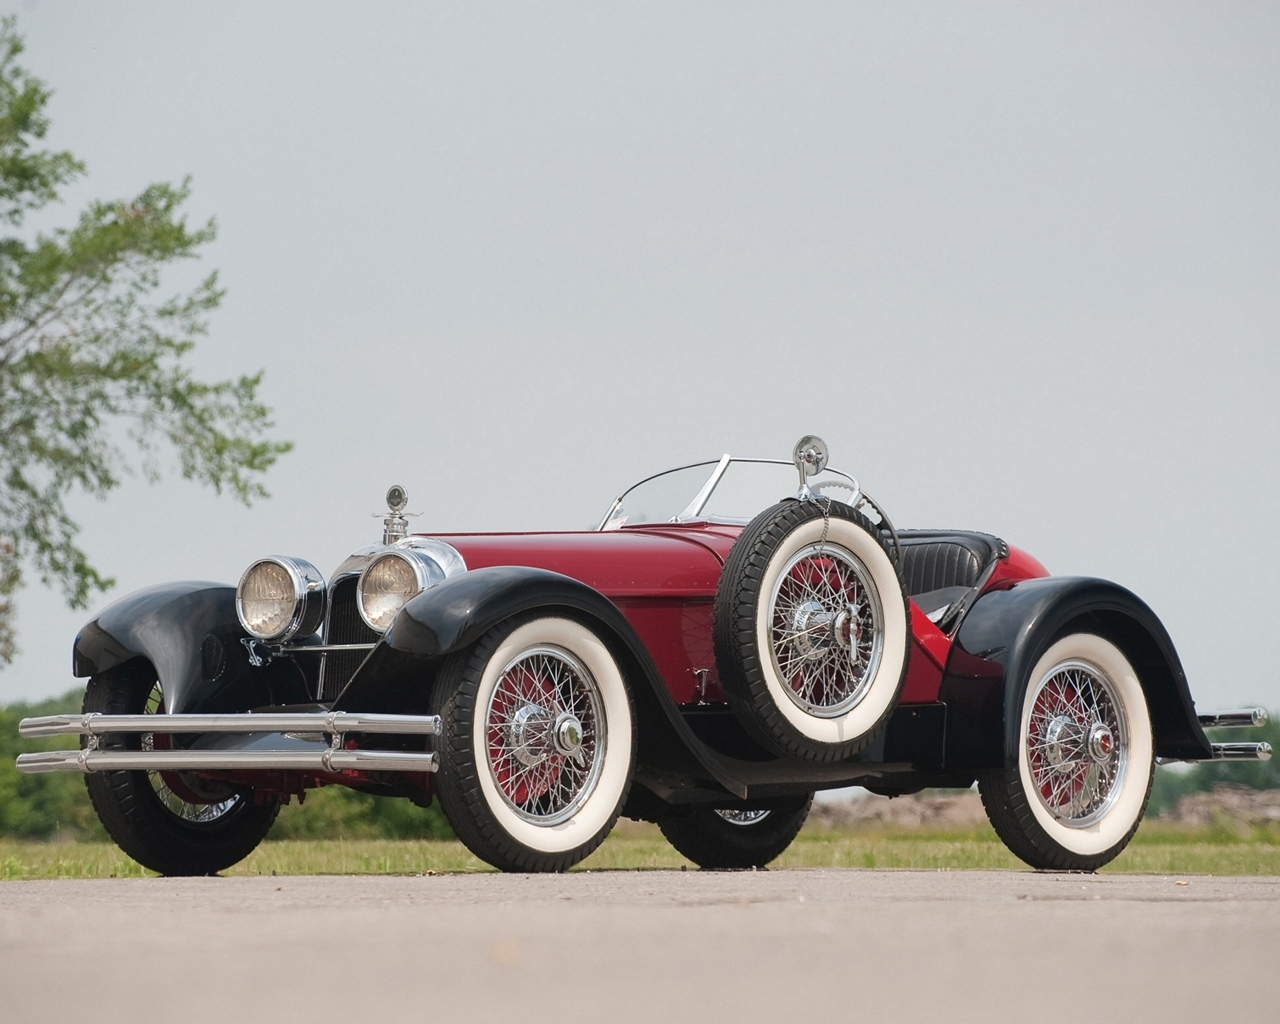 80 american classic cars wallpaper hottest pictures - Old american cars wallpapers ...